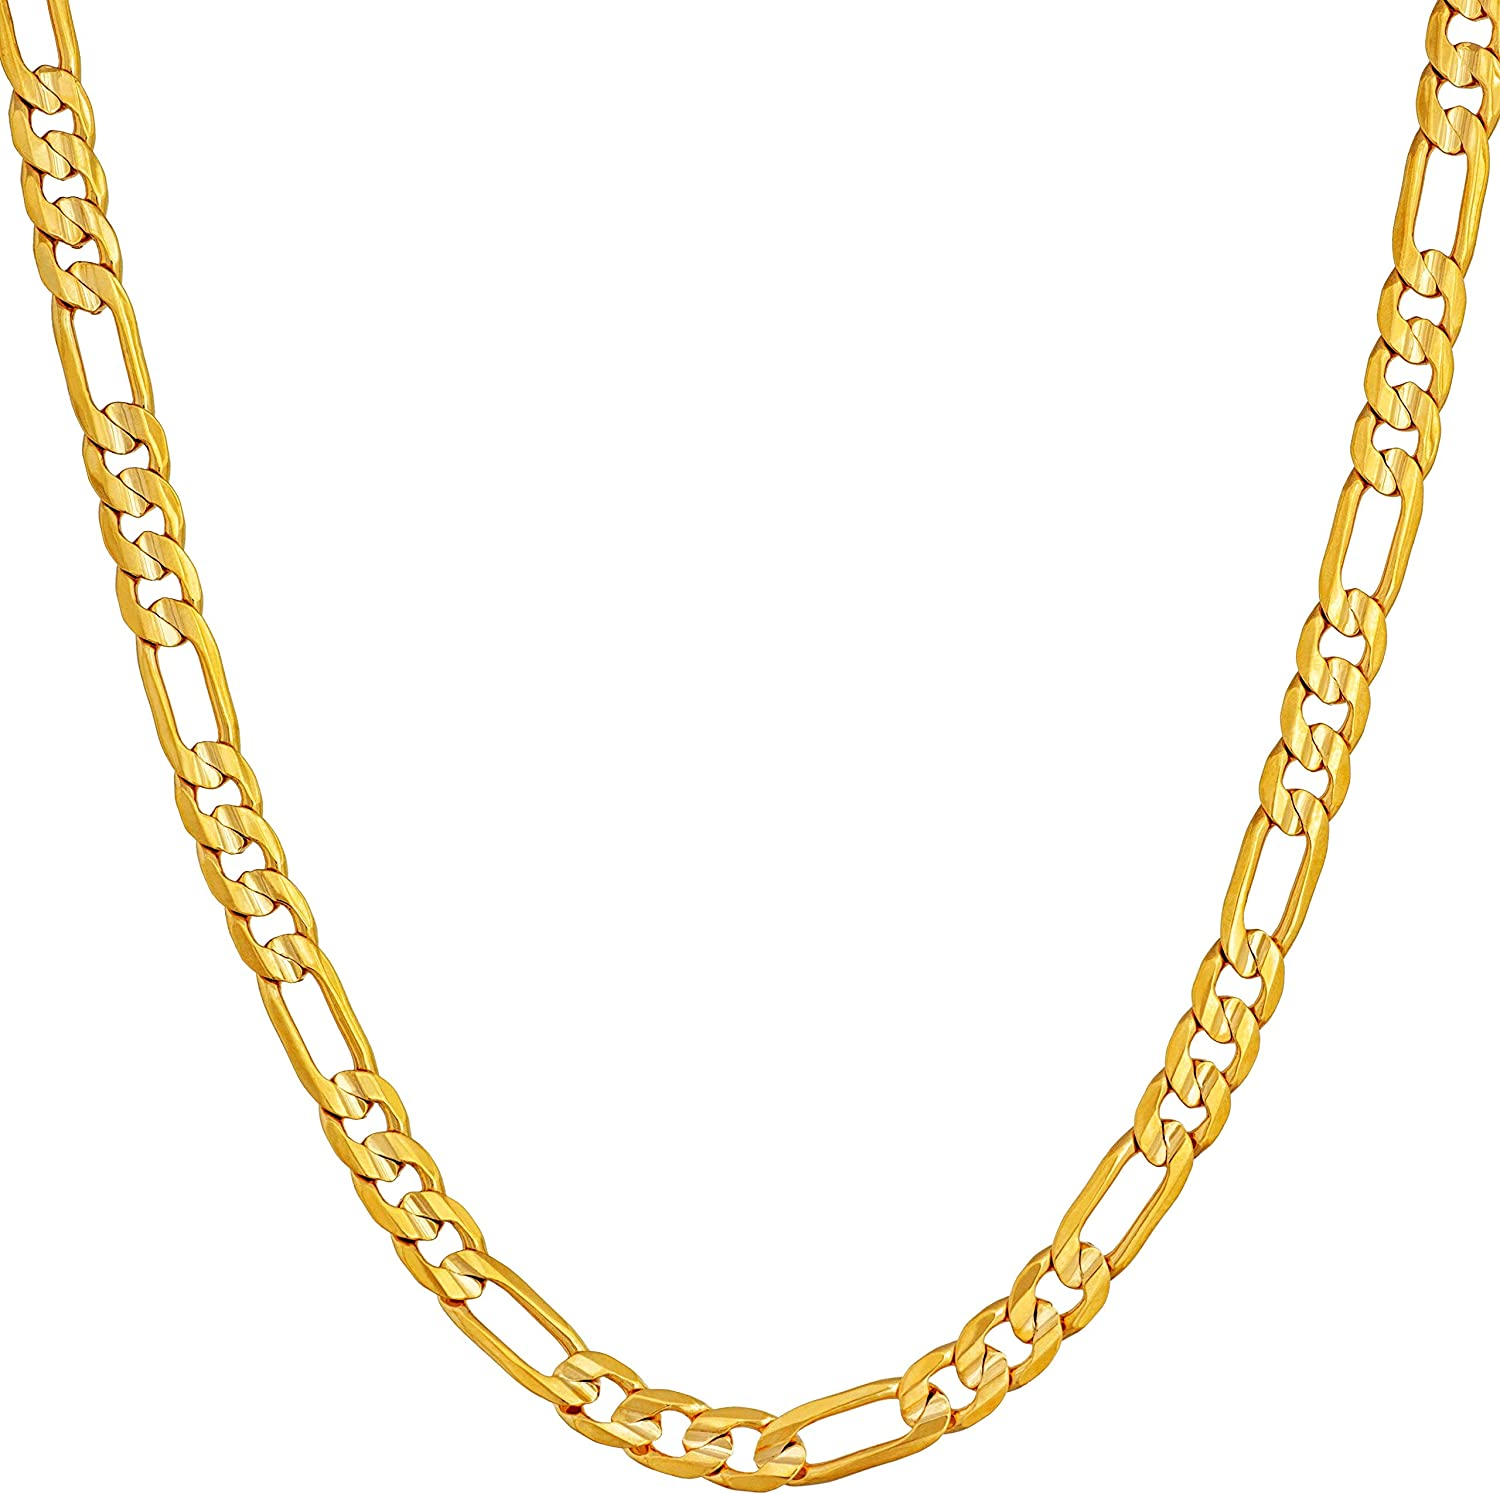 24K 17.5 Inch Real Gold Plated Figaro Necklace Chain for Jewelry Necklace Making 17 12 x 332 x 164 Inches